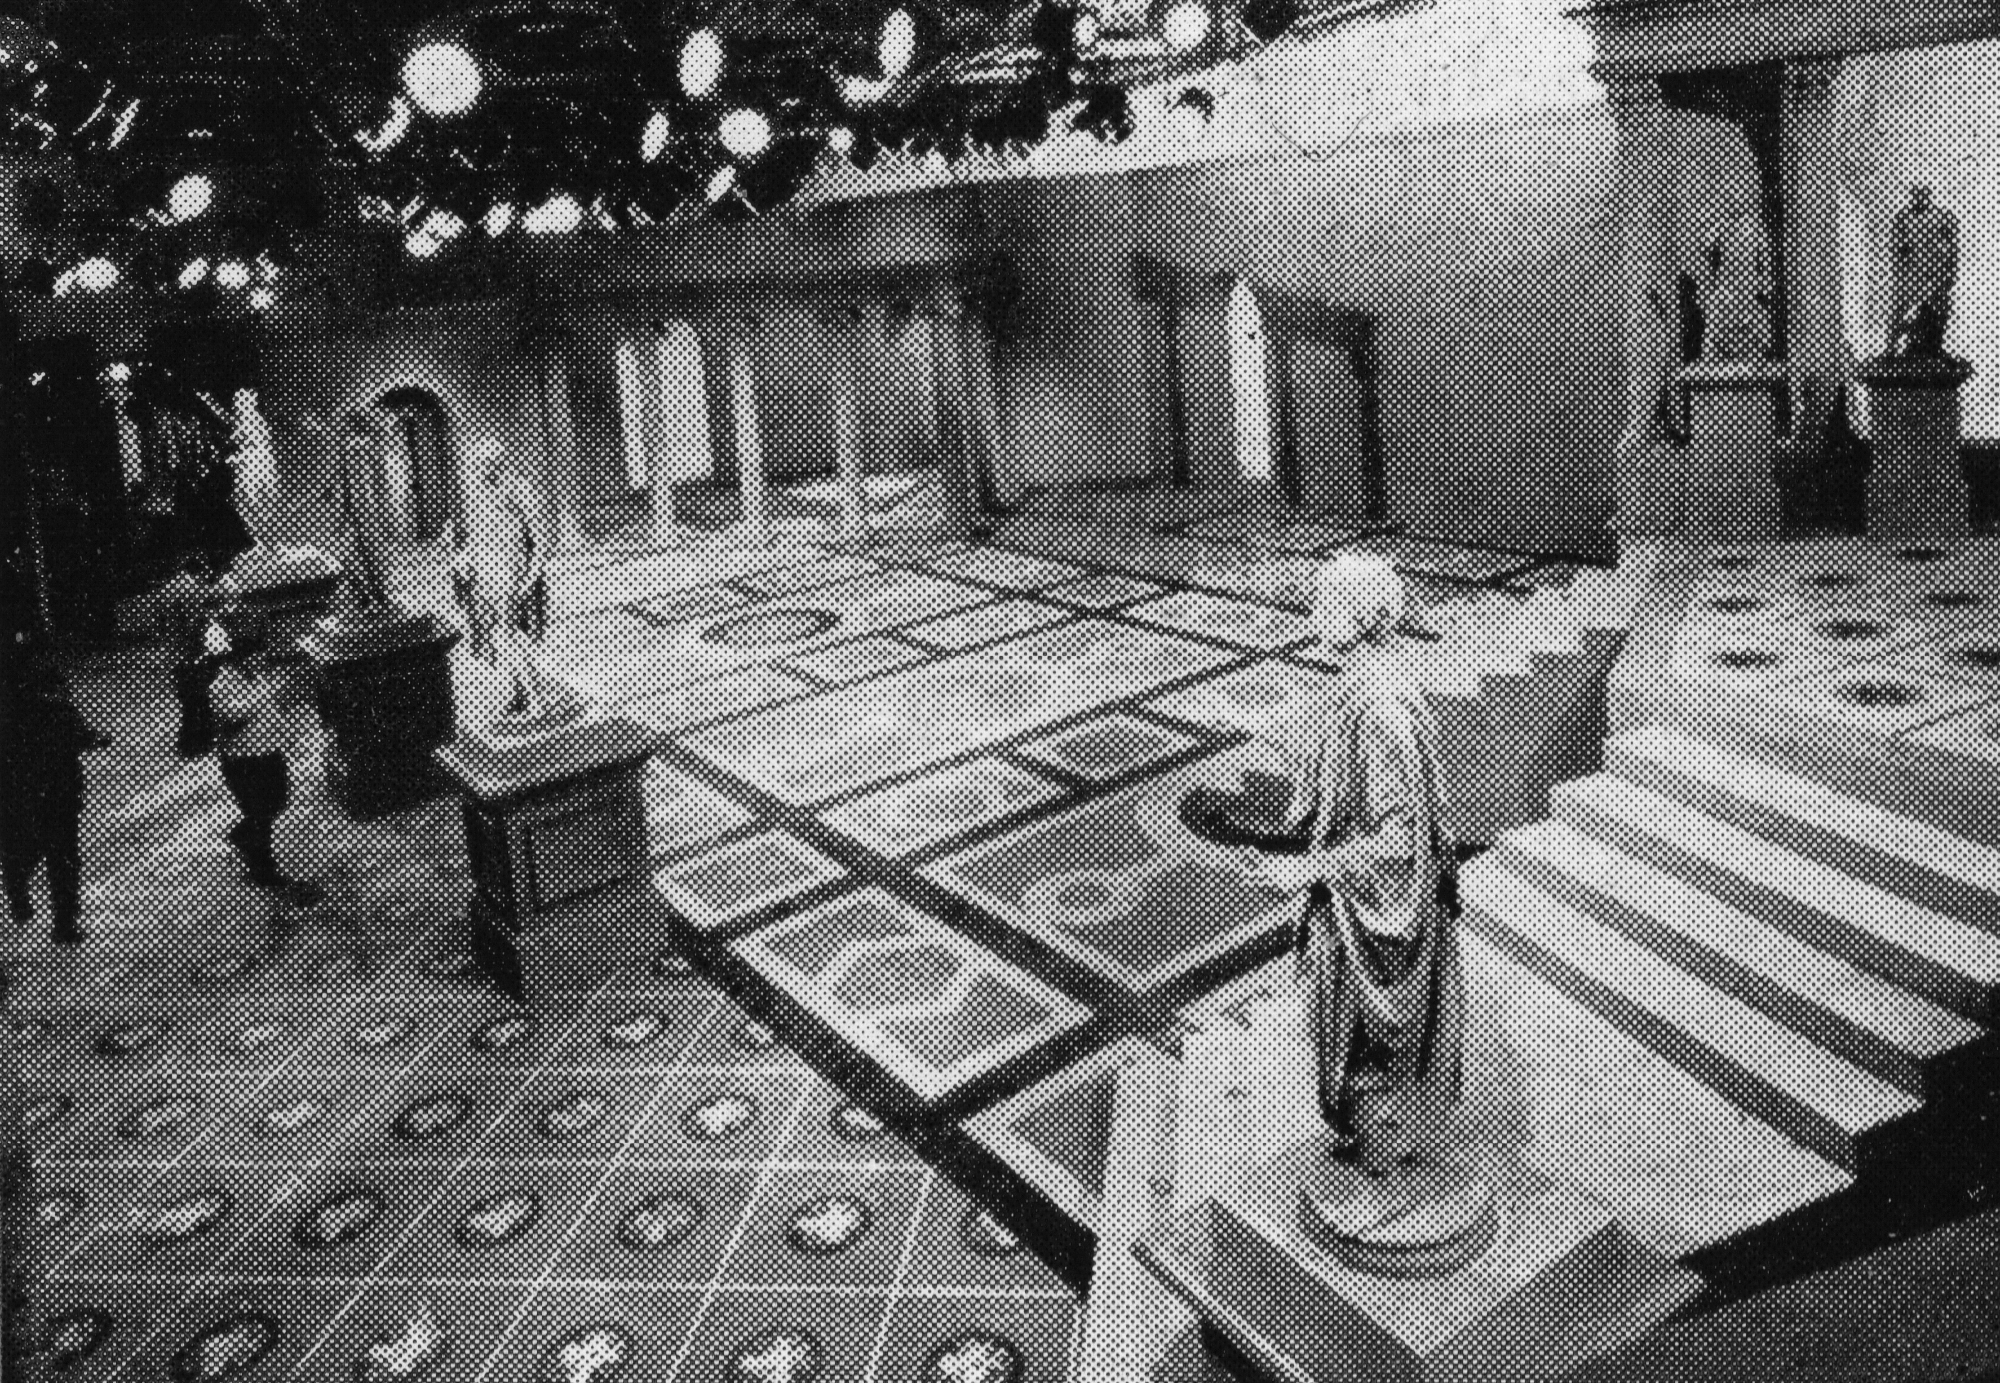 Roman-style statues stand in a television studio